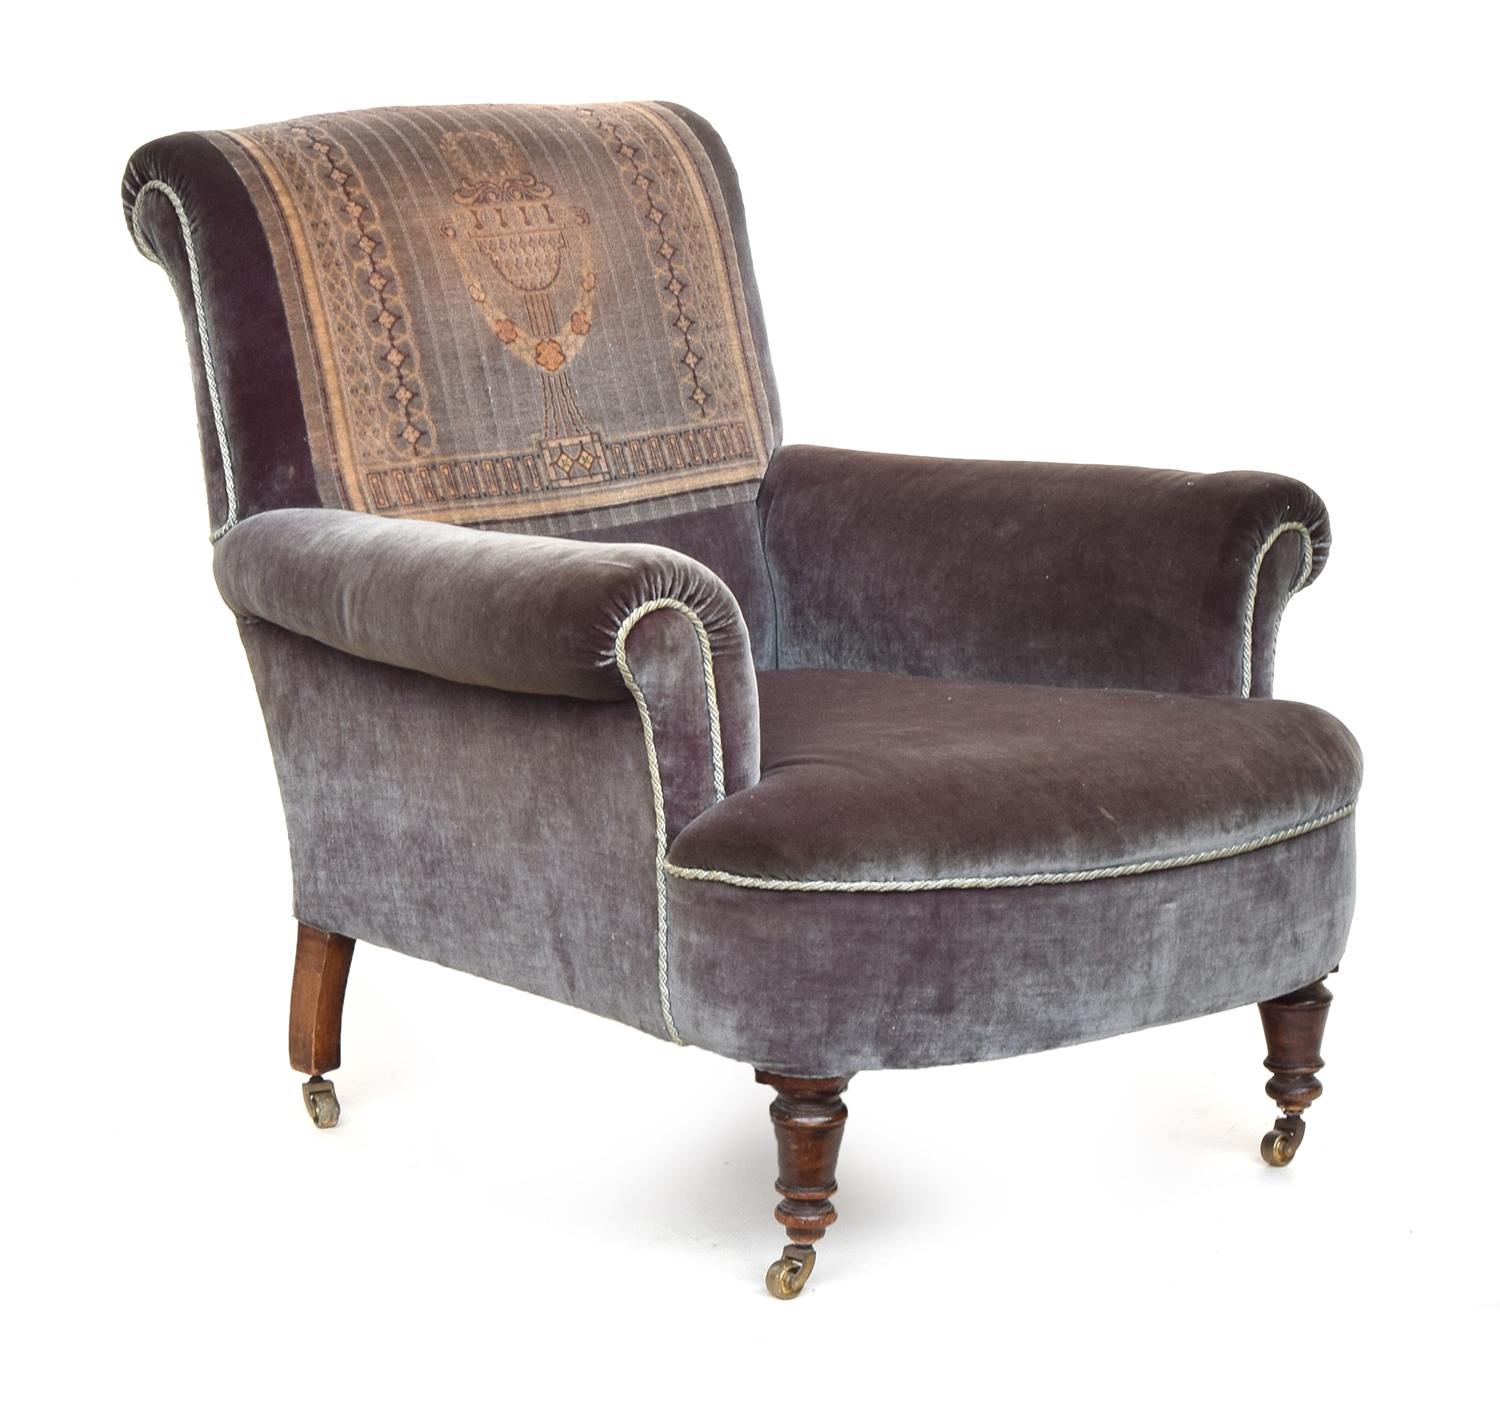 A 19th century armchair, woven carpet panel, with outswept arms on turned casters - Image 2 of 2